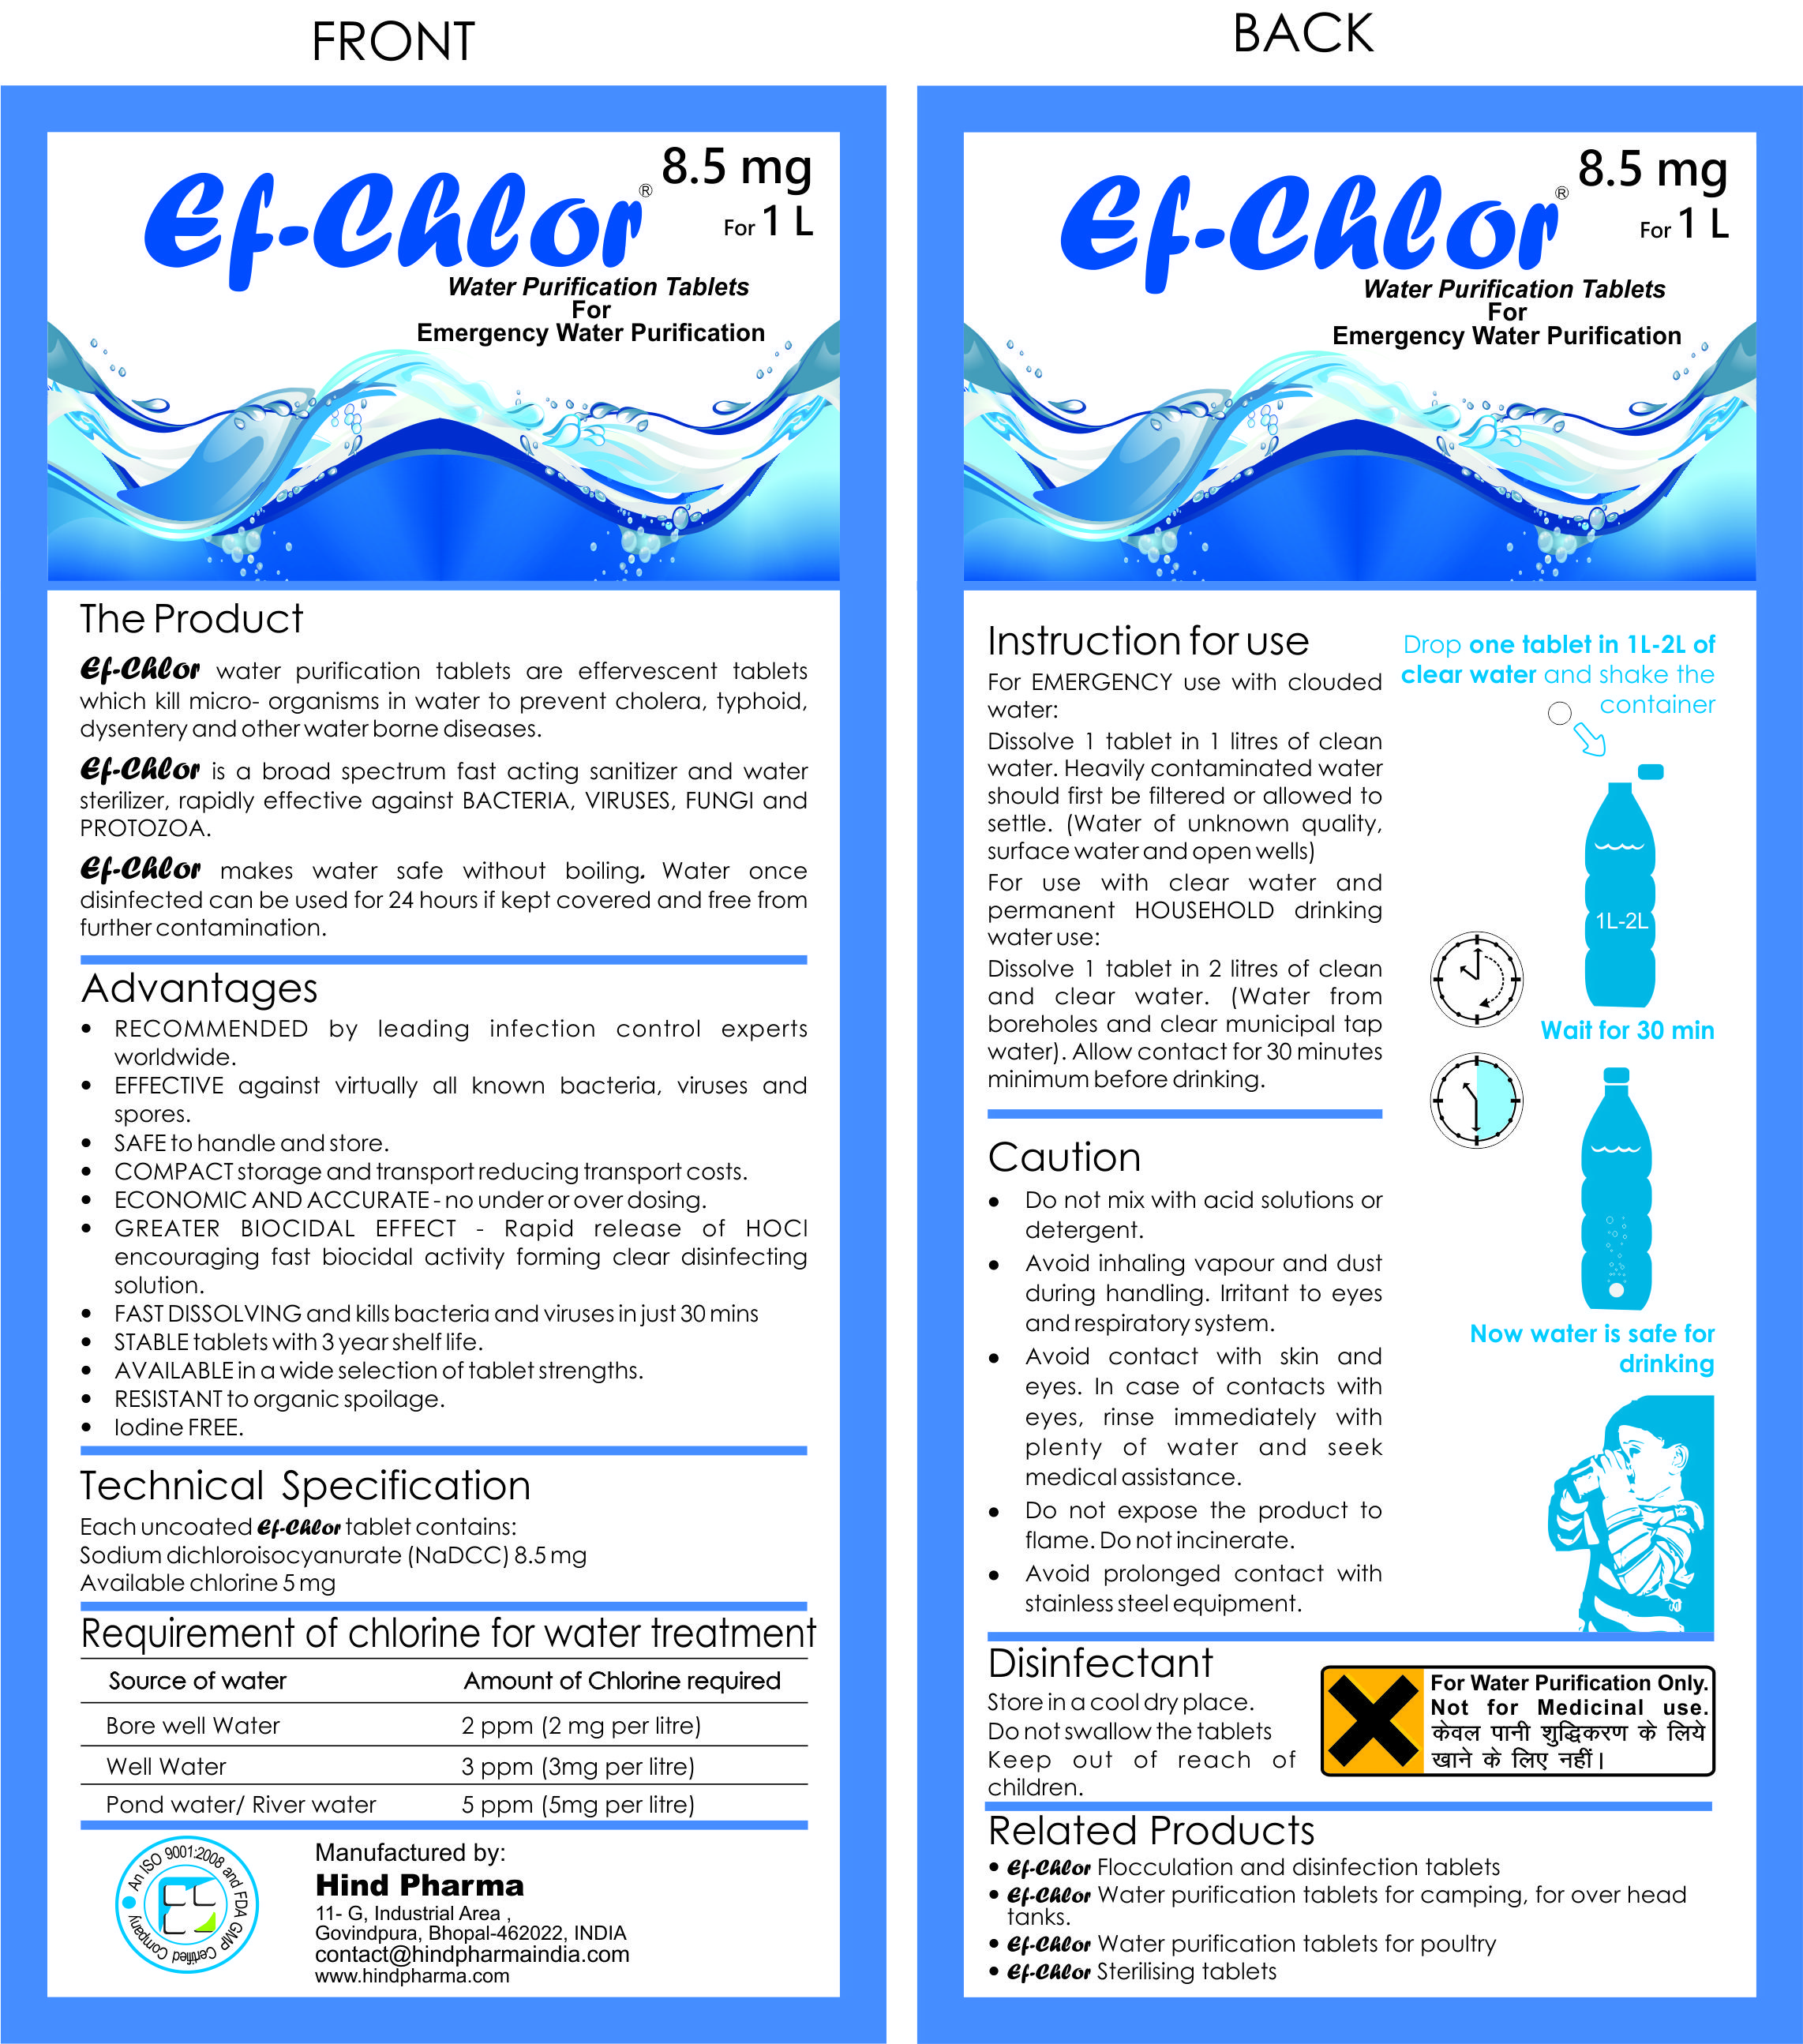 Travel and Camping 33 mg - 100 Tablets Ef-Chlor Water Purification Tablets//Drops Purifies 2.64 Gallons in 1 Tablet Survival - Potable Drinking Water Treatment Ideal for Emergencies